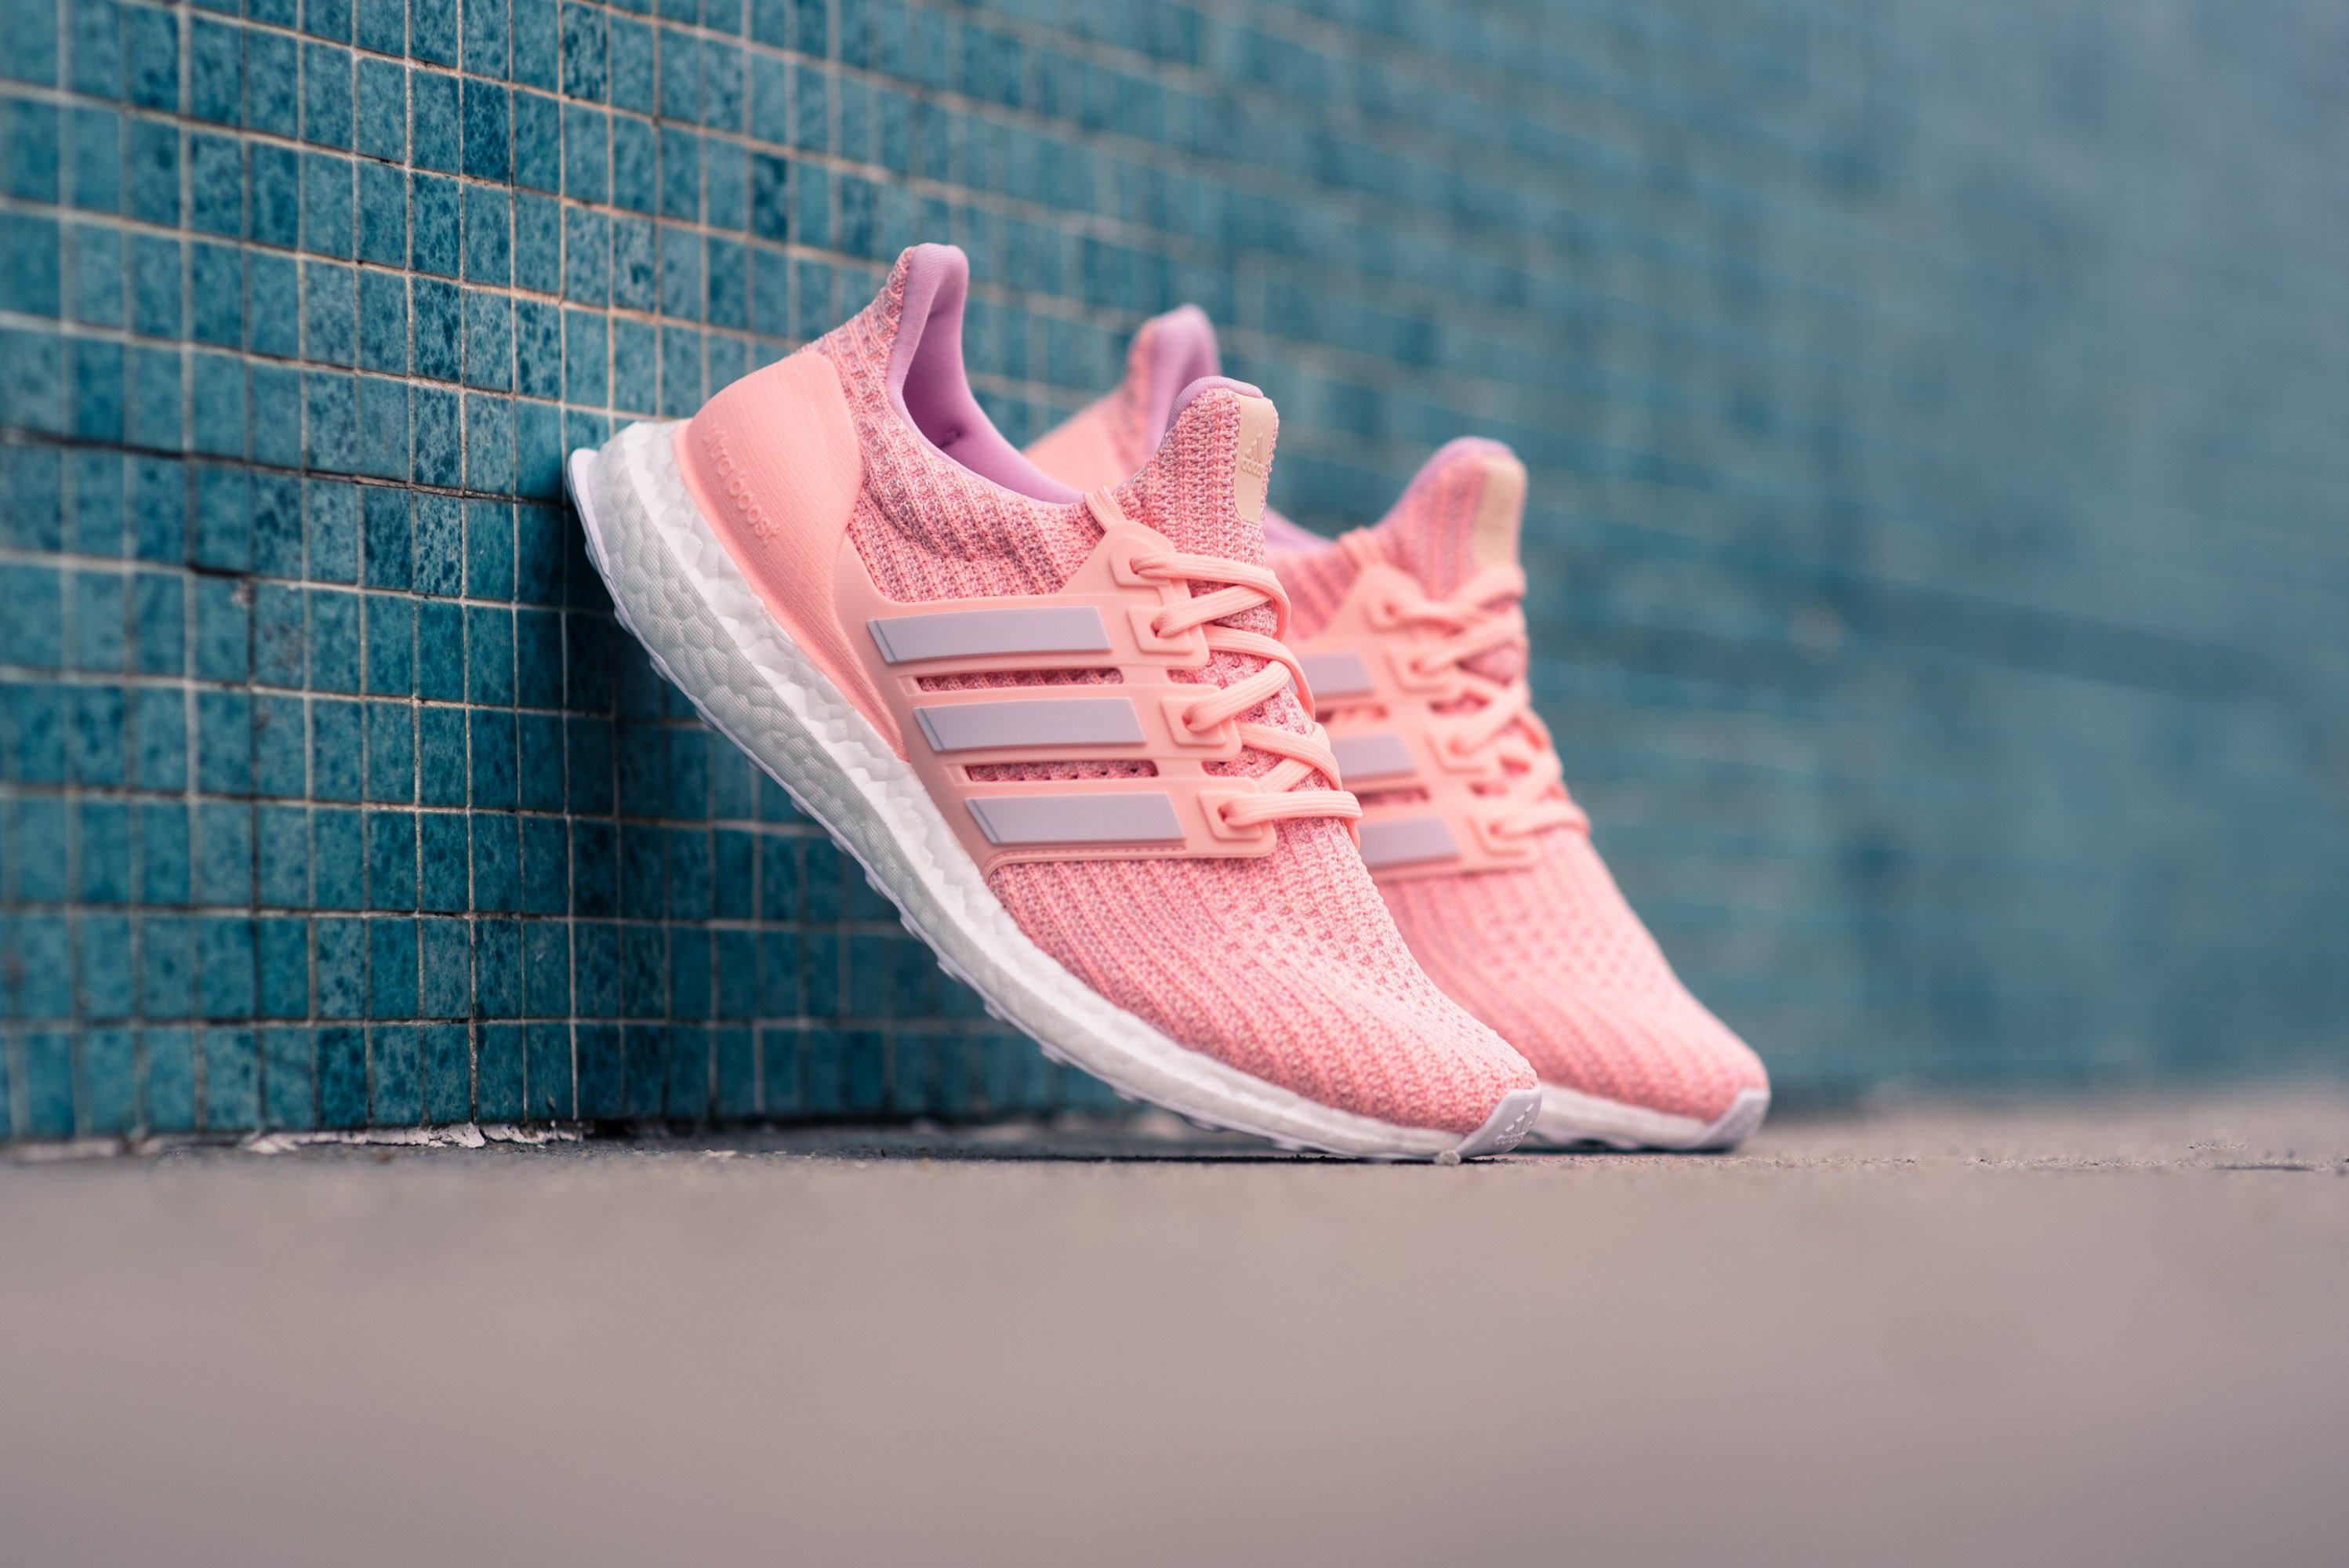 pretty nice 5eae0 ac3cf A New Pink Colorway Of The adidas Ultra Boost 4.0 Just ...